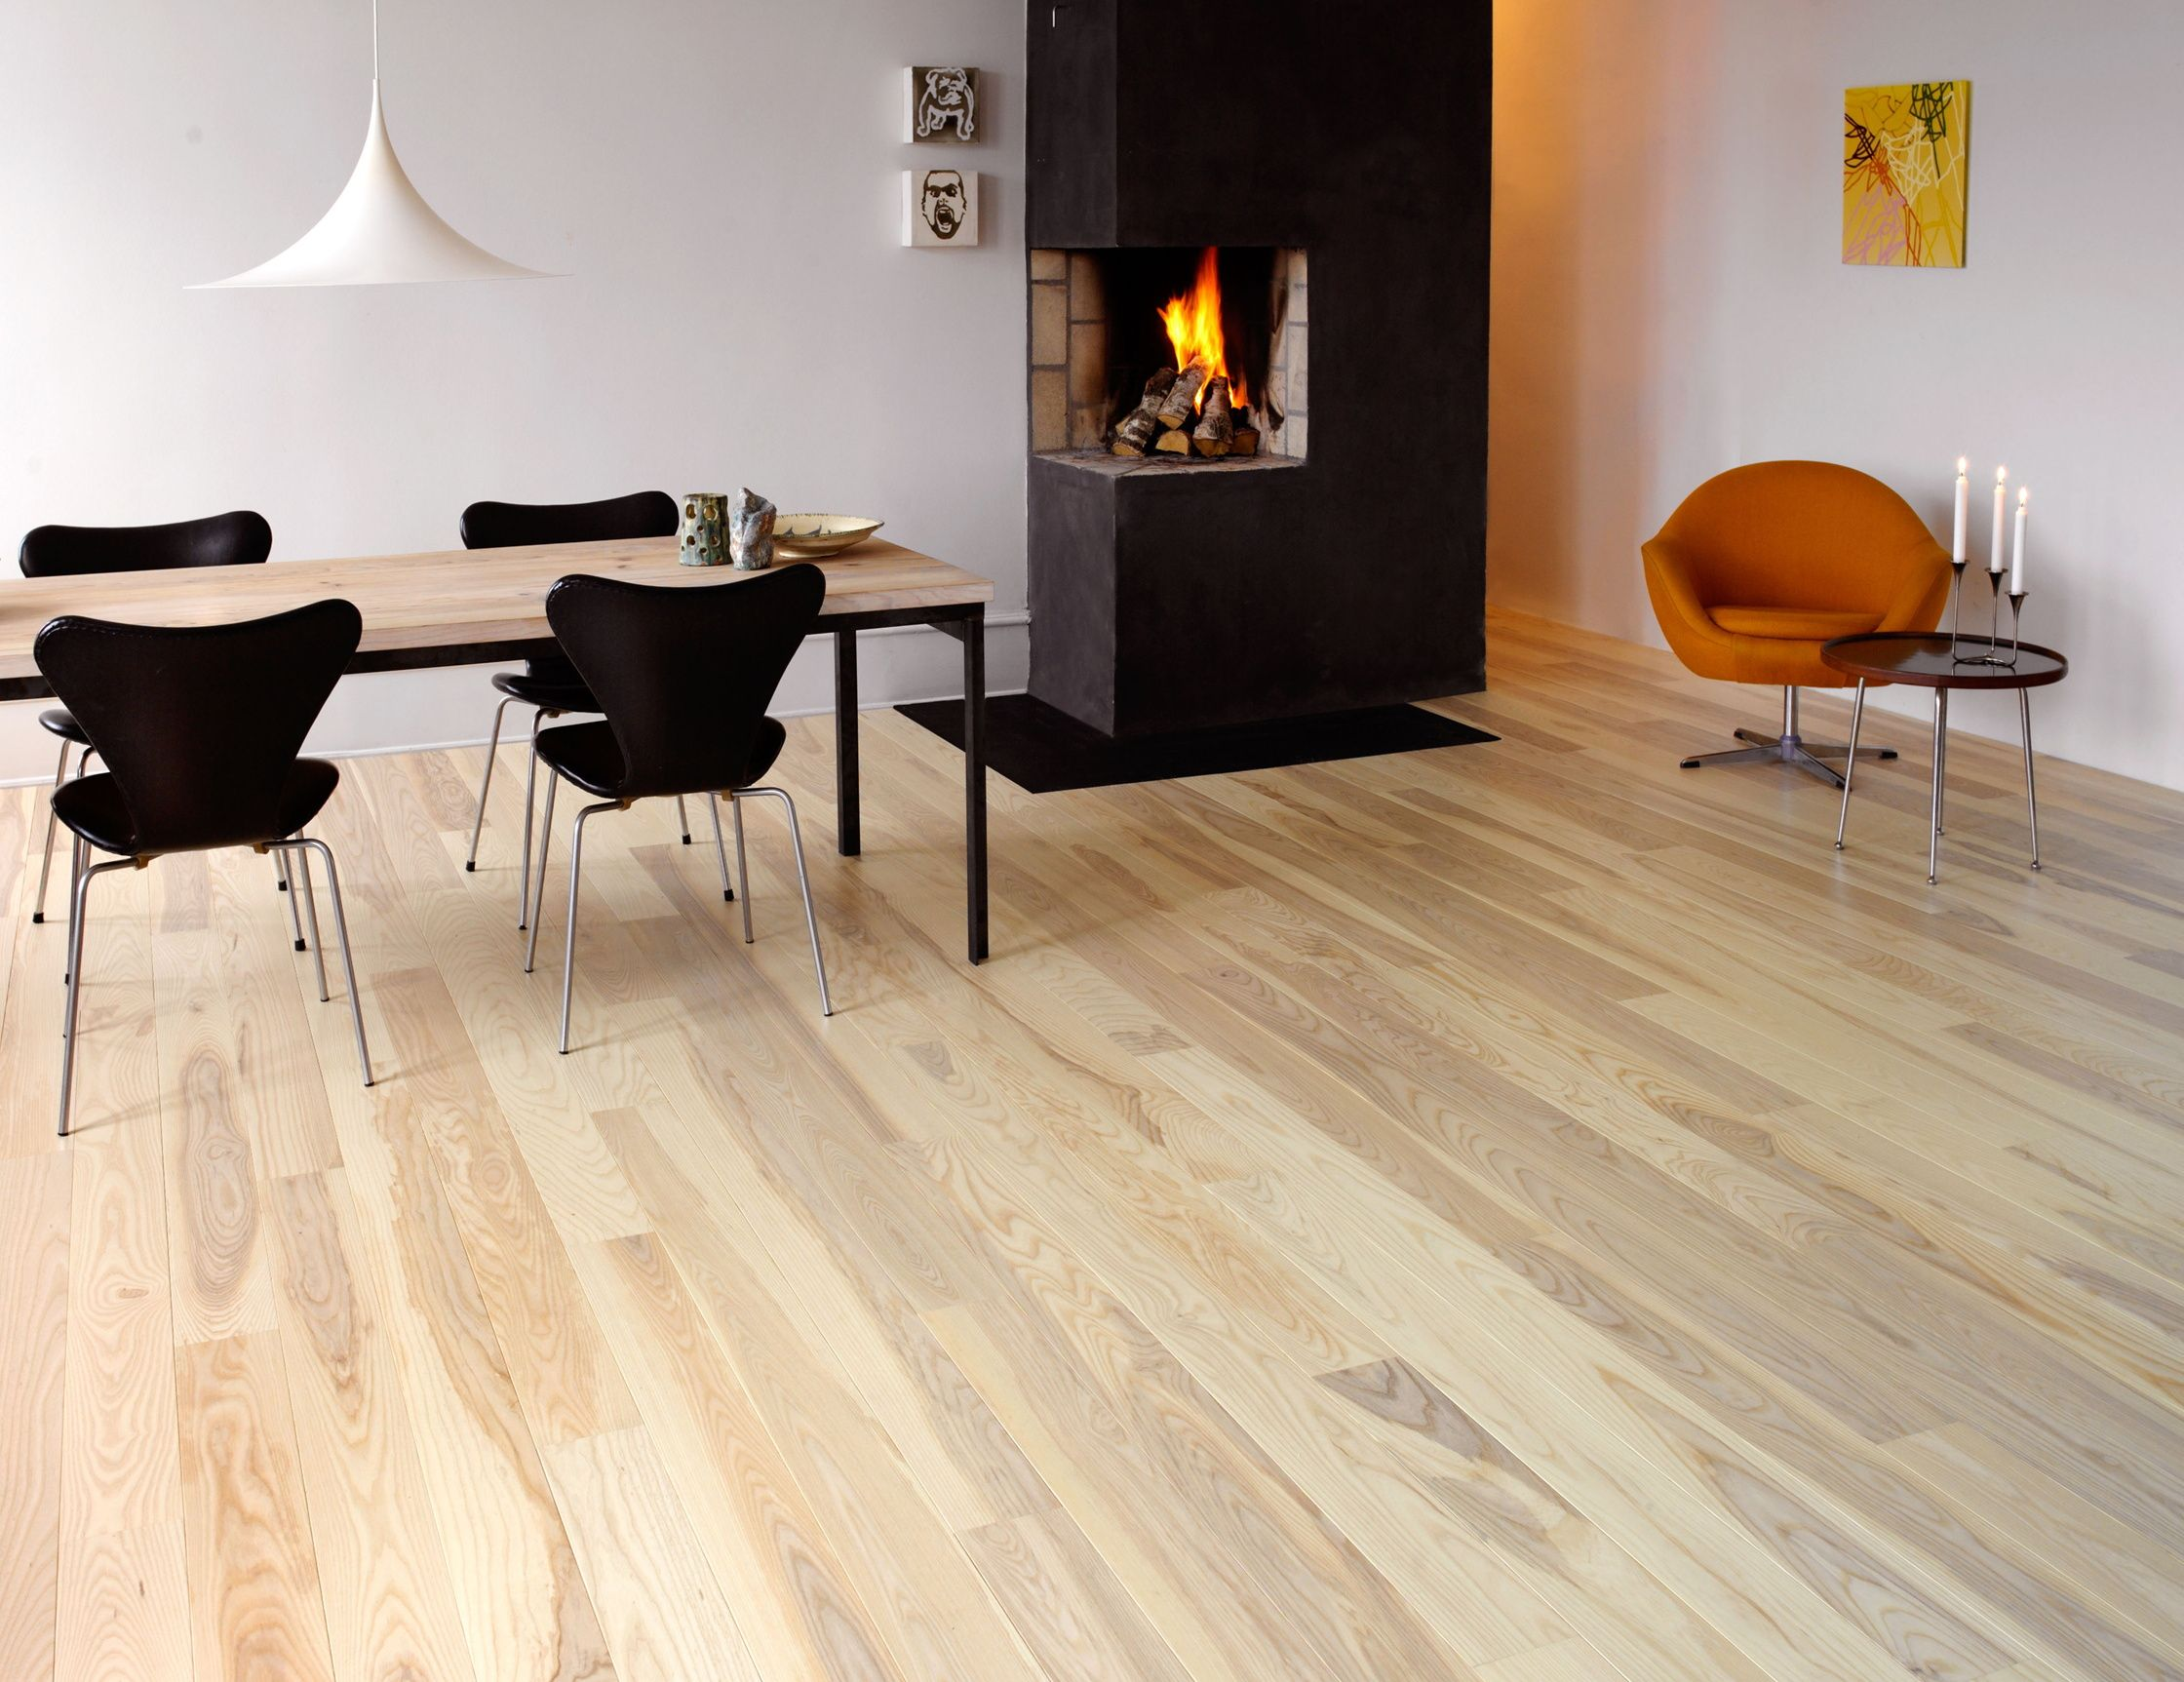 ash flooring - Google Search | 250 | Pinterest | Ash, Scandinavian ...